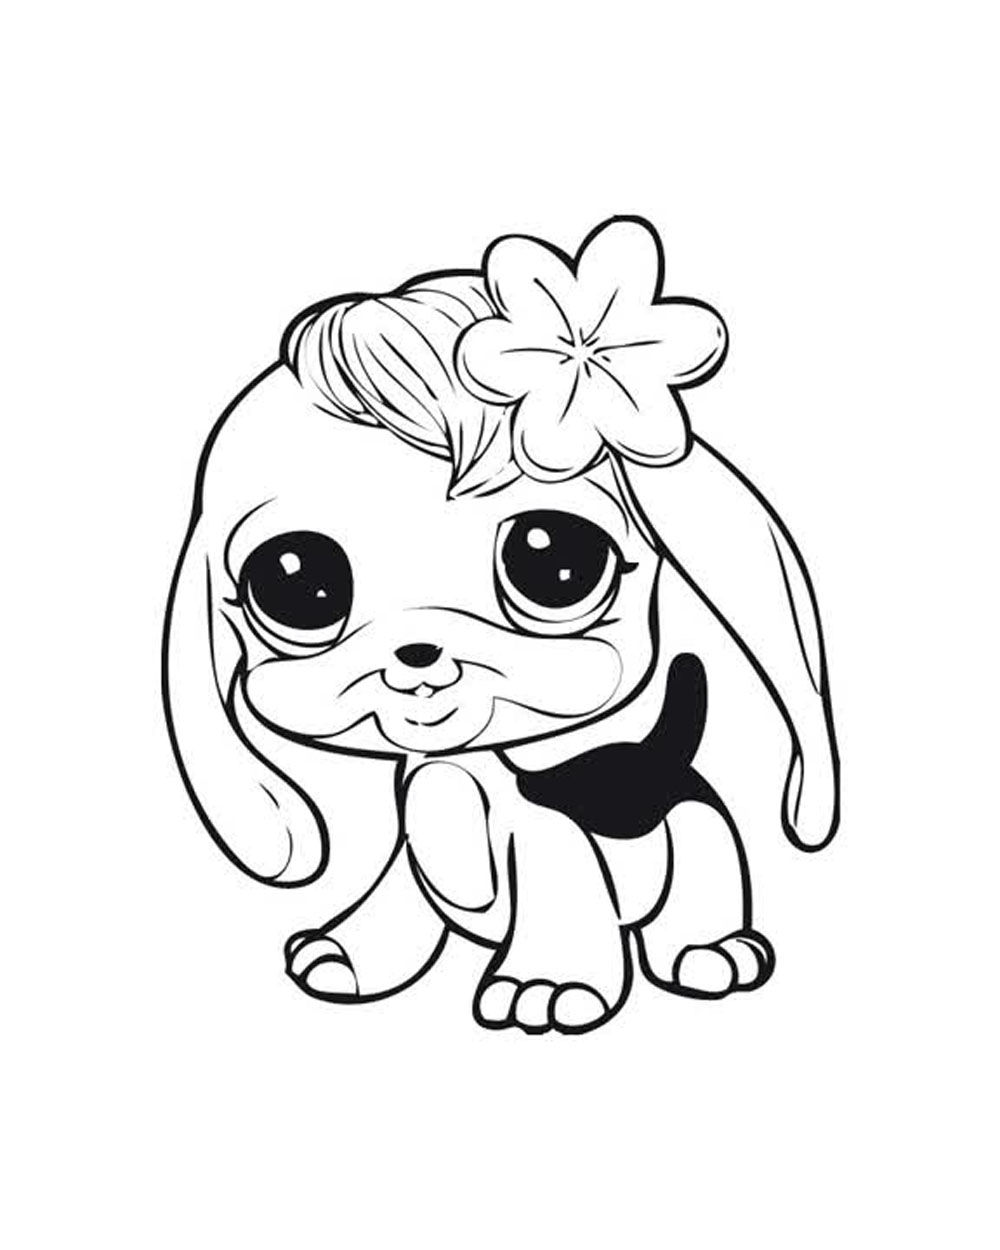 1000x1250 Littlest Pet Shop Coloring Pages To Print Free Arilitv Littlest